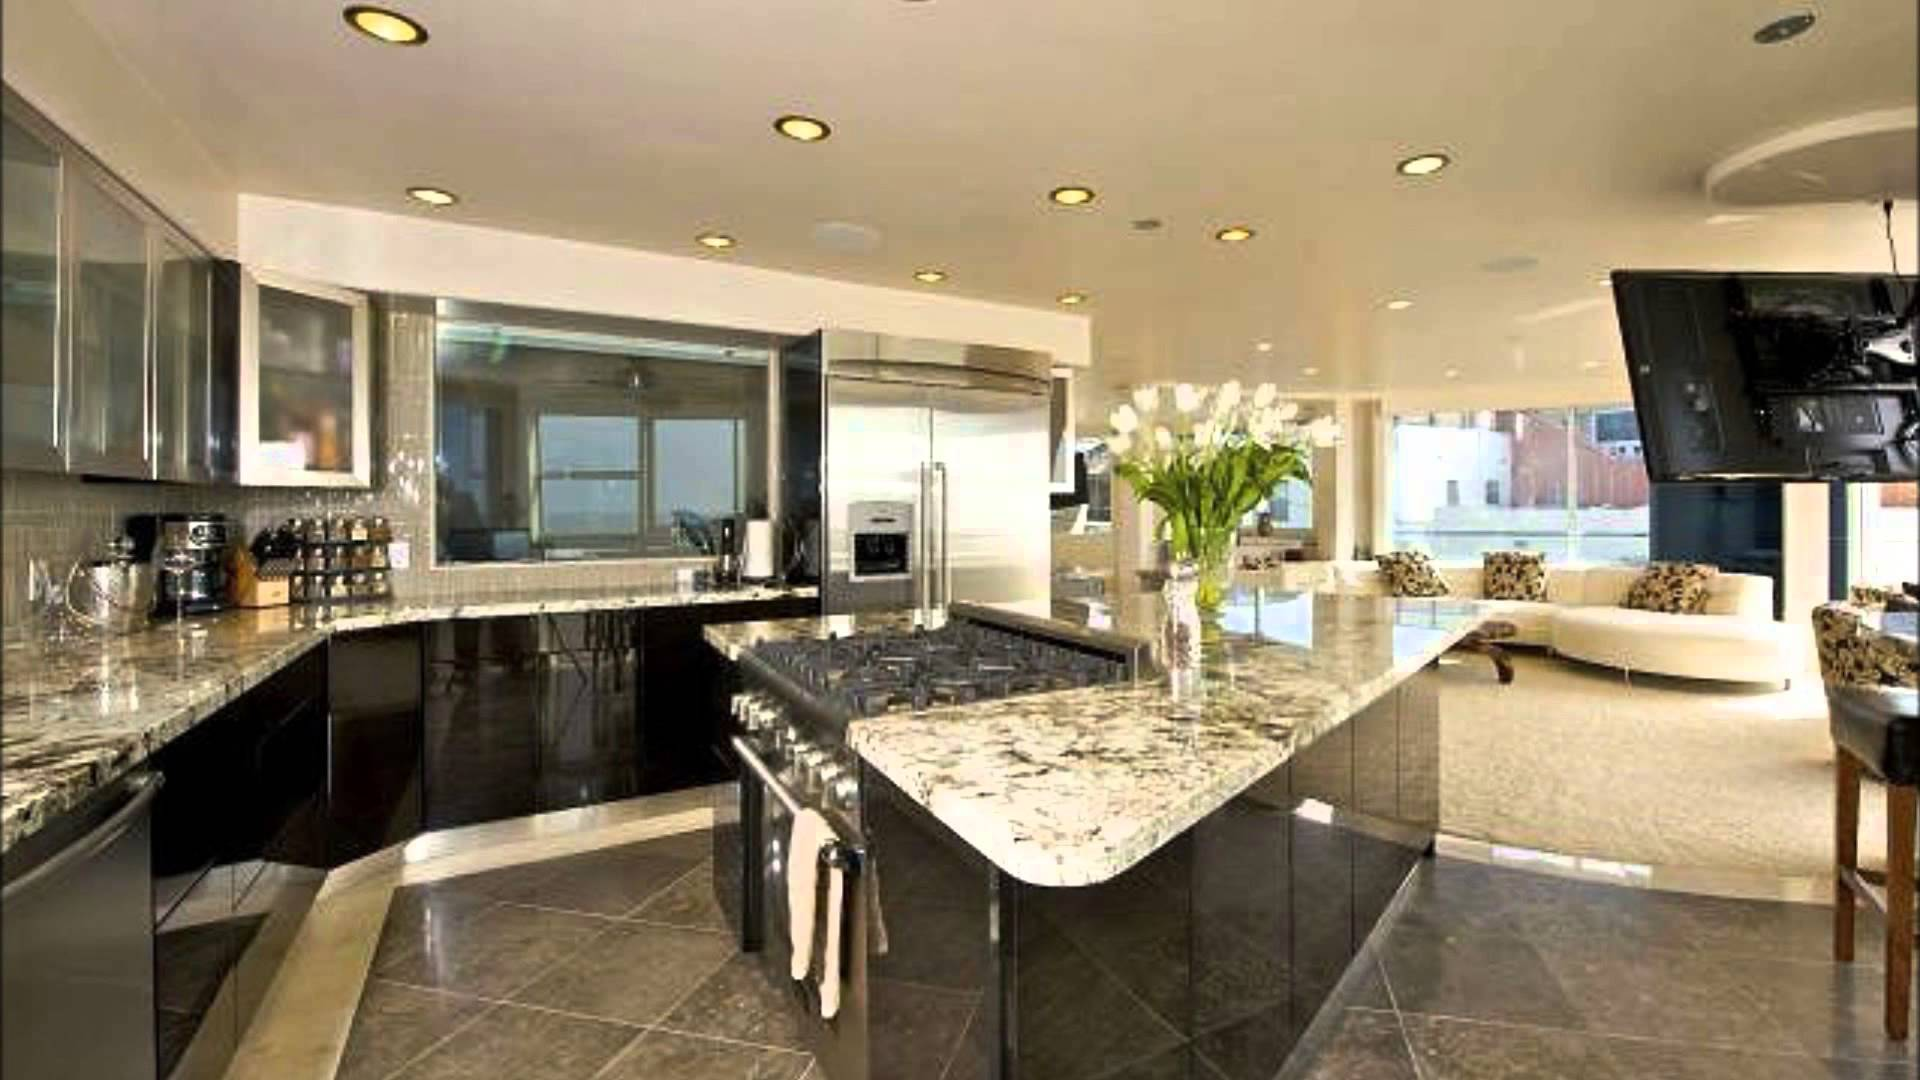 Design your own kitchen ideas with images for Kitchen ideas pictures designs